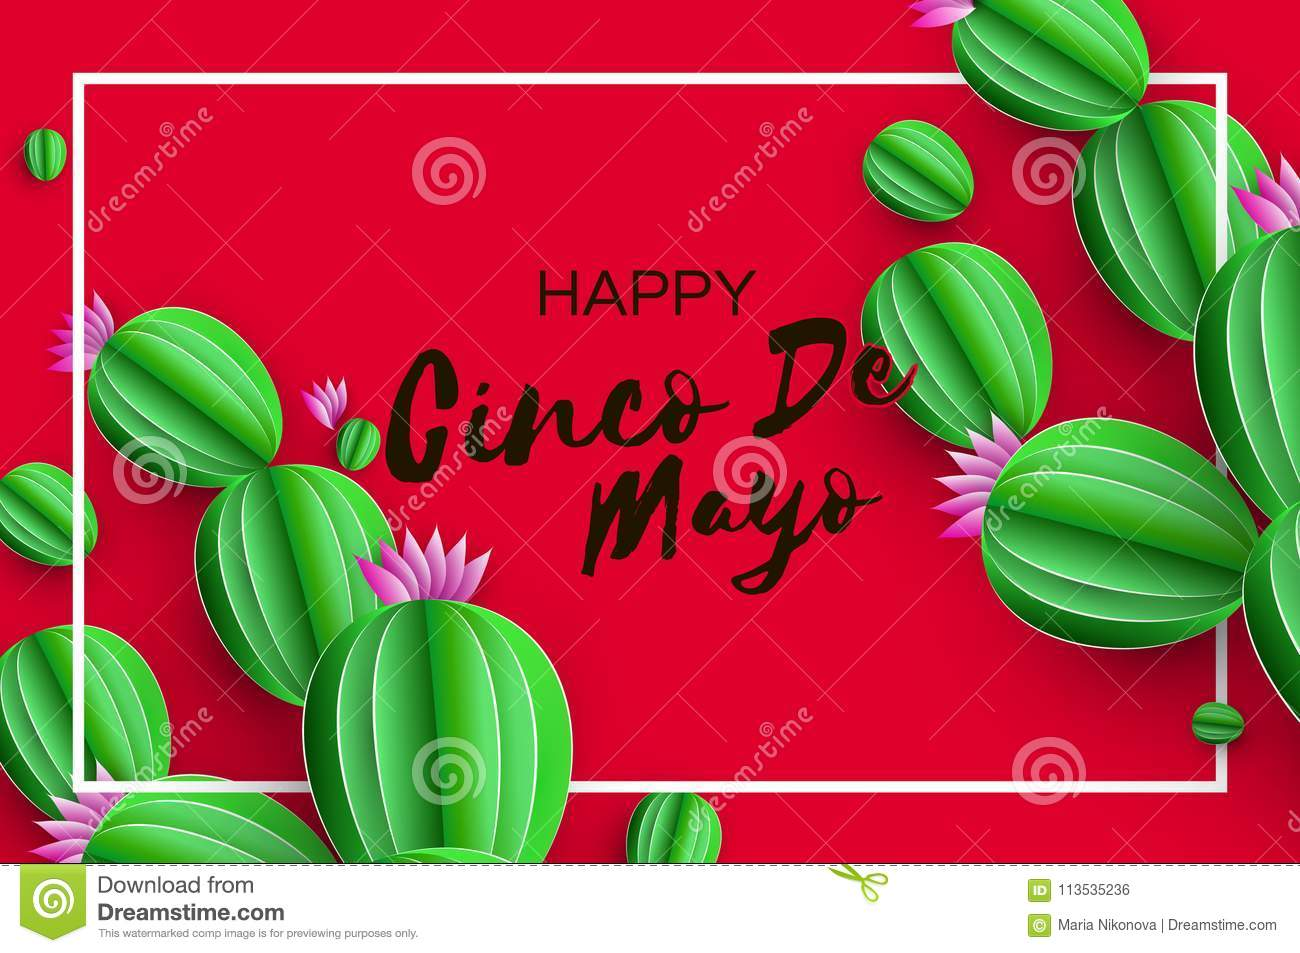 Happy Cinco De Mayo Greeting Card Pink Paper Flower And Cactus In